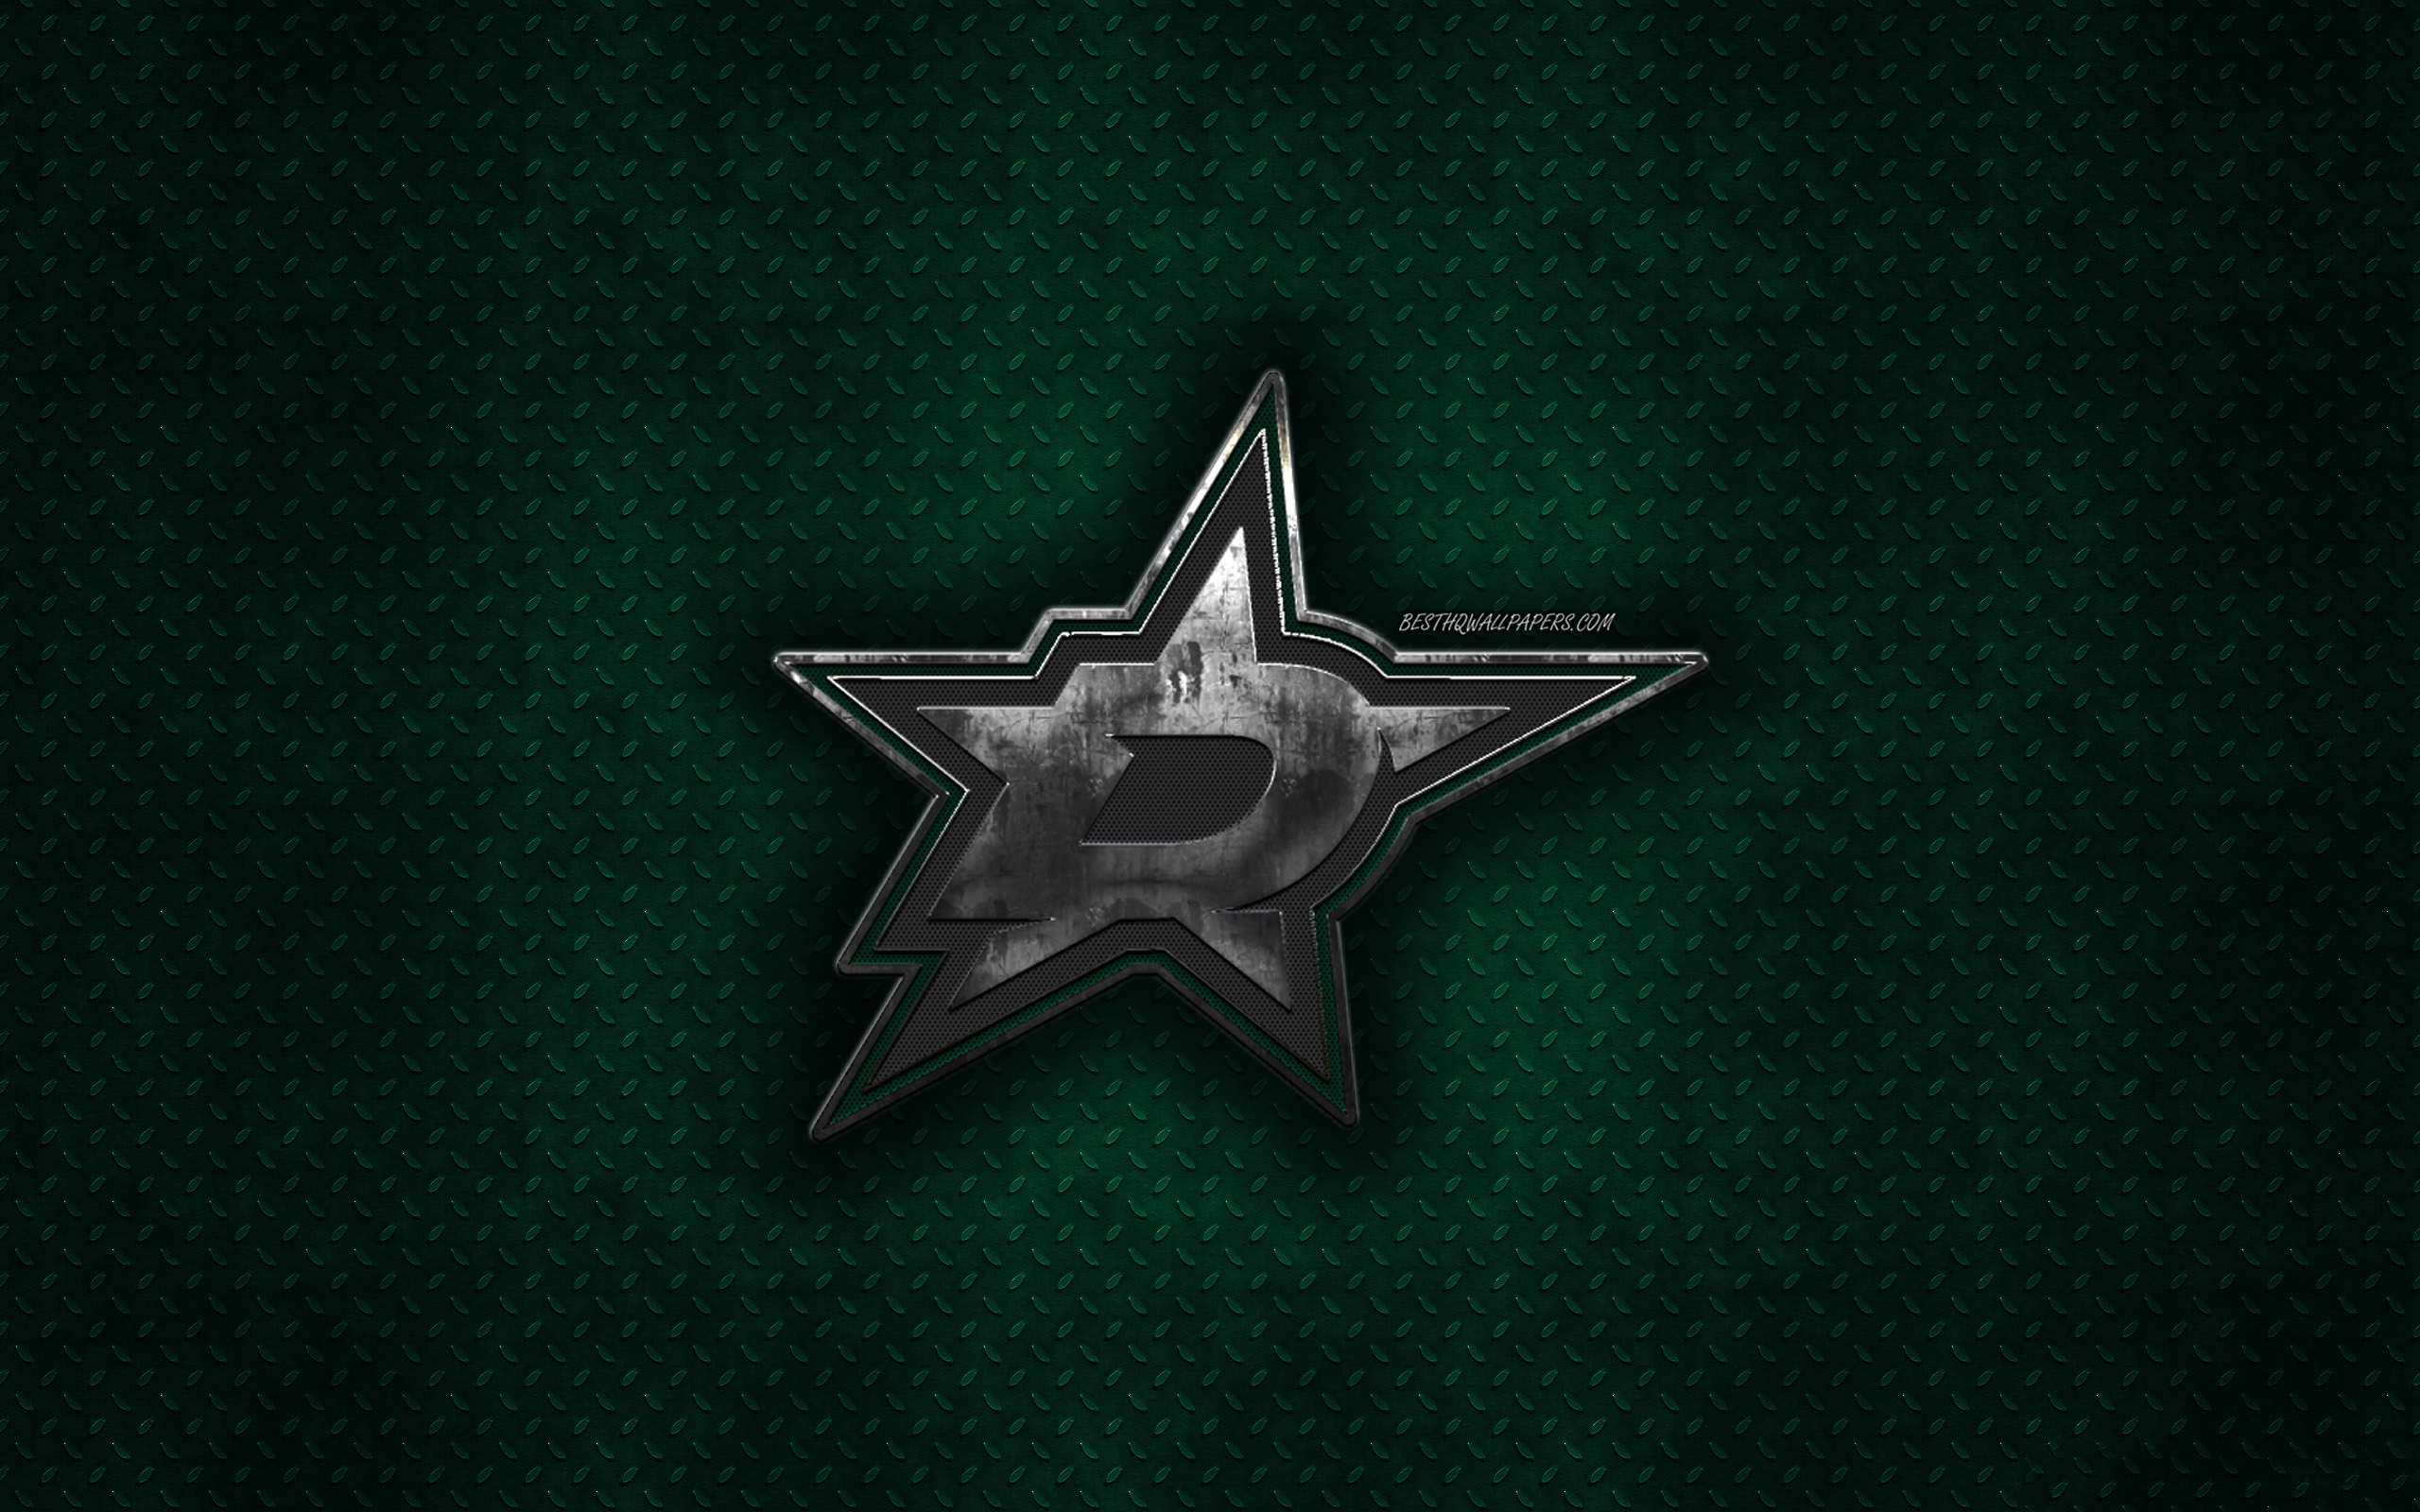 Dallas Stars Hd Wallpaper Posted By Ethan Johnson